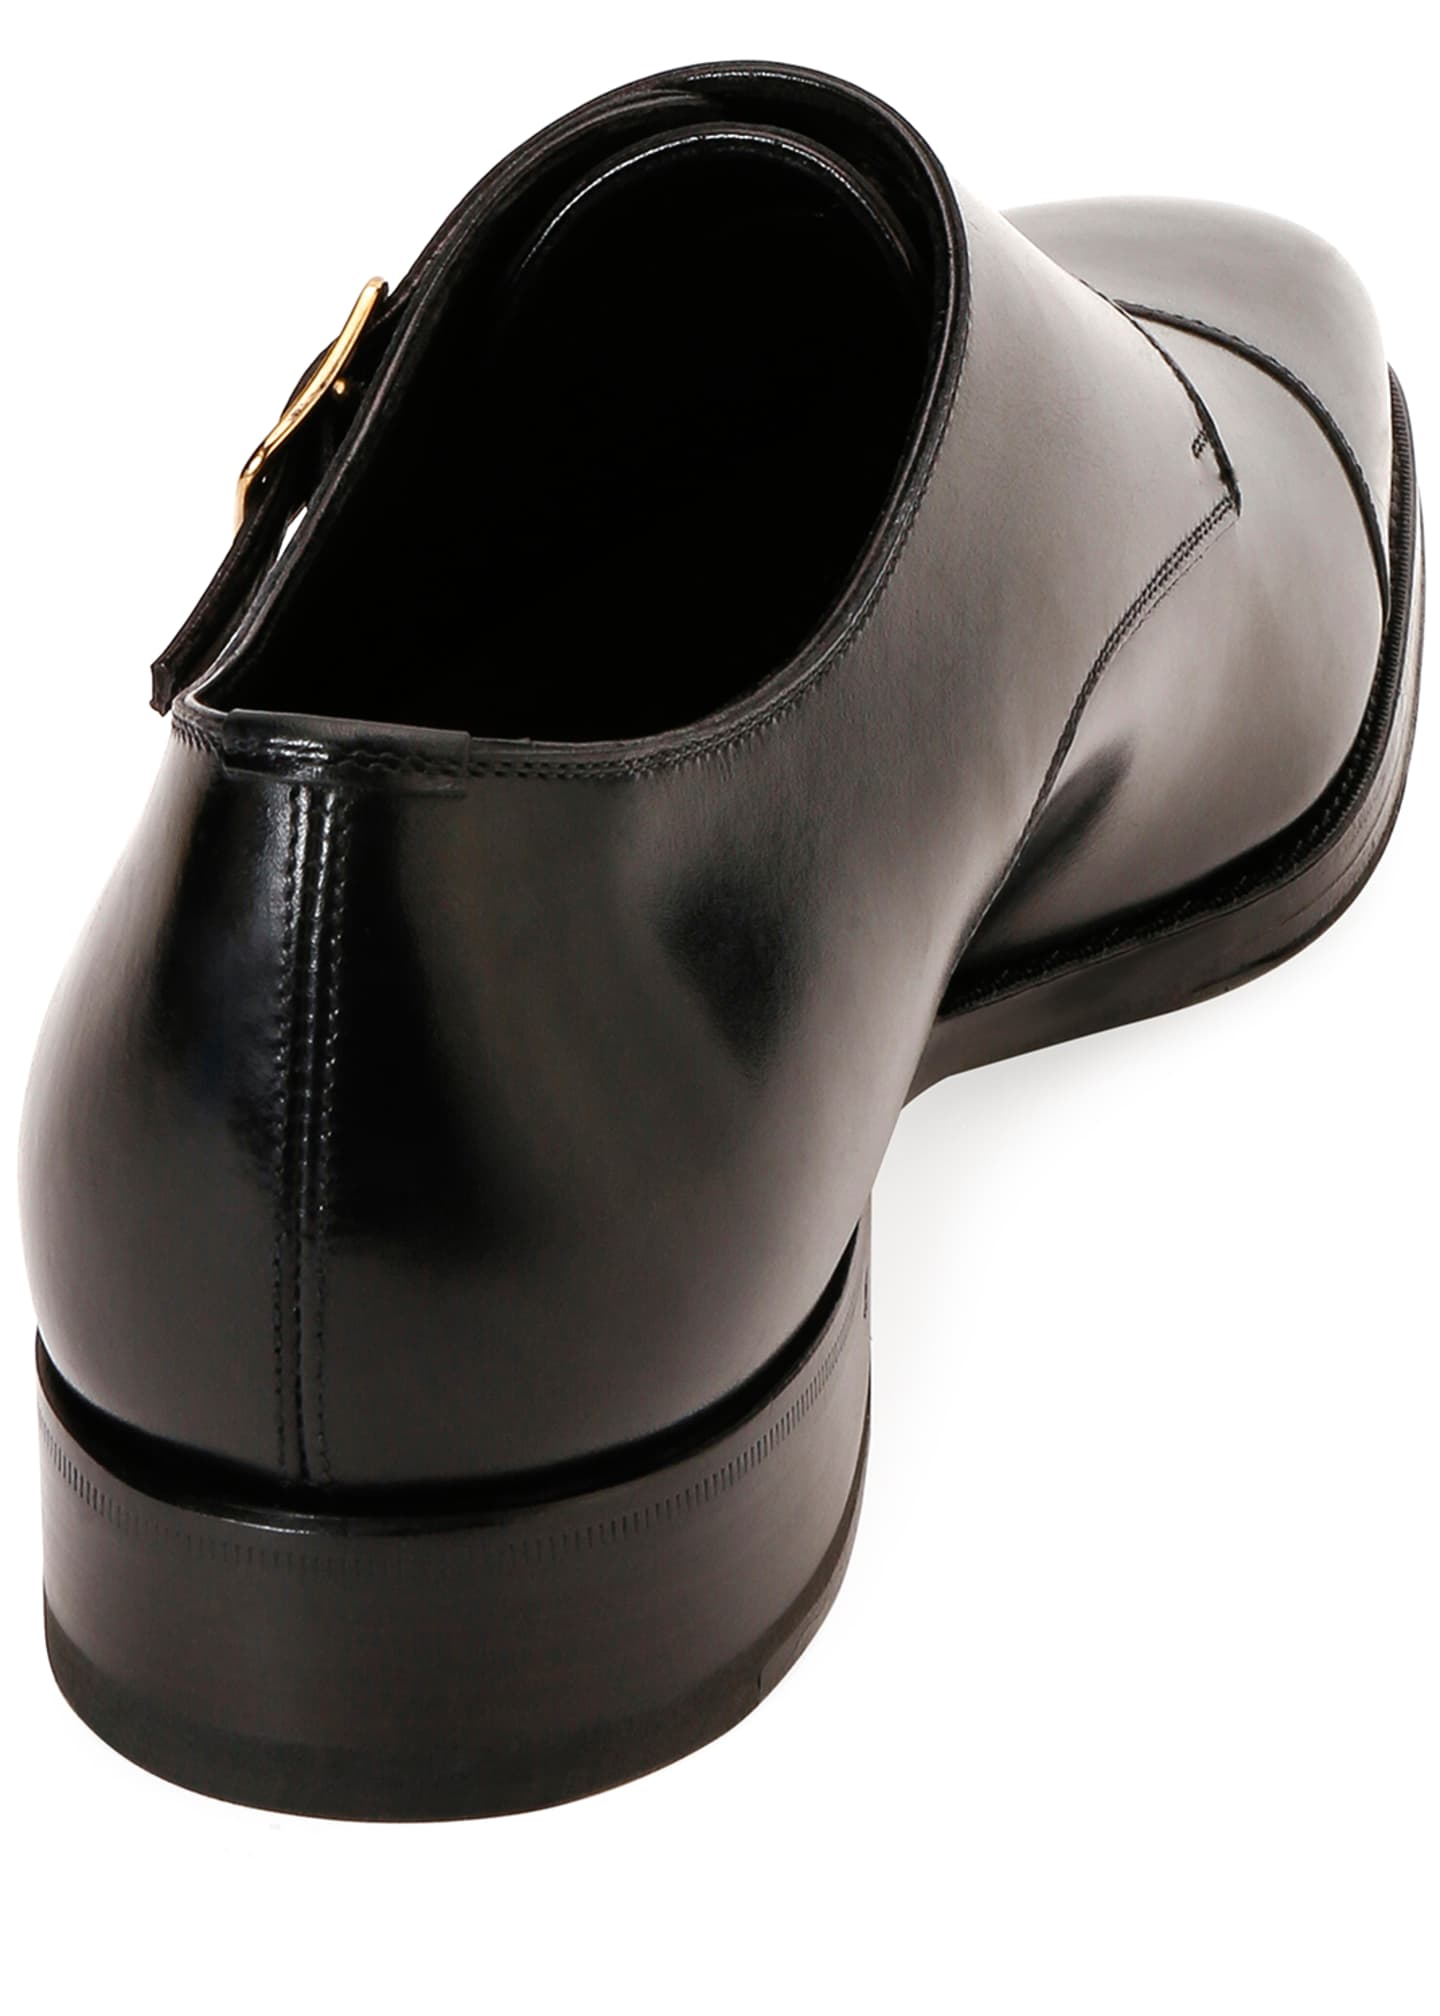 Image 3 of 3: Men's Double-Monk Strap Leather Loafers